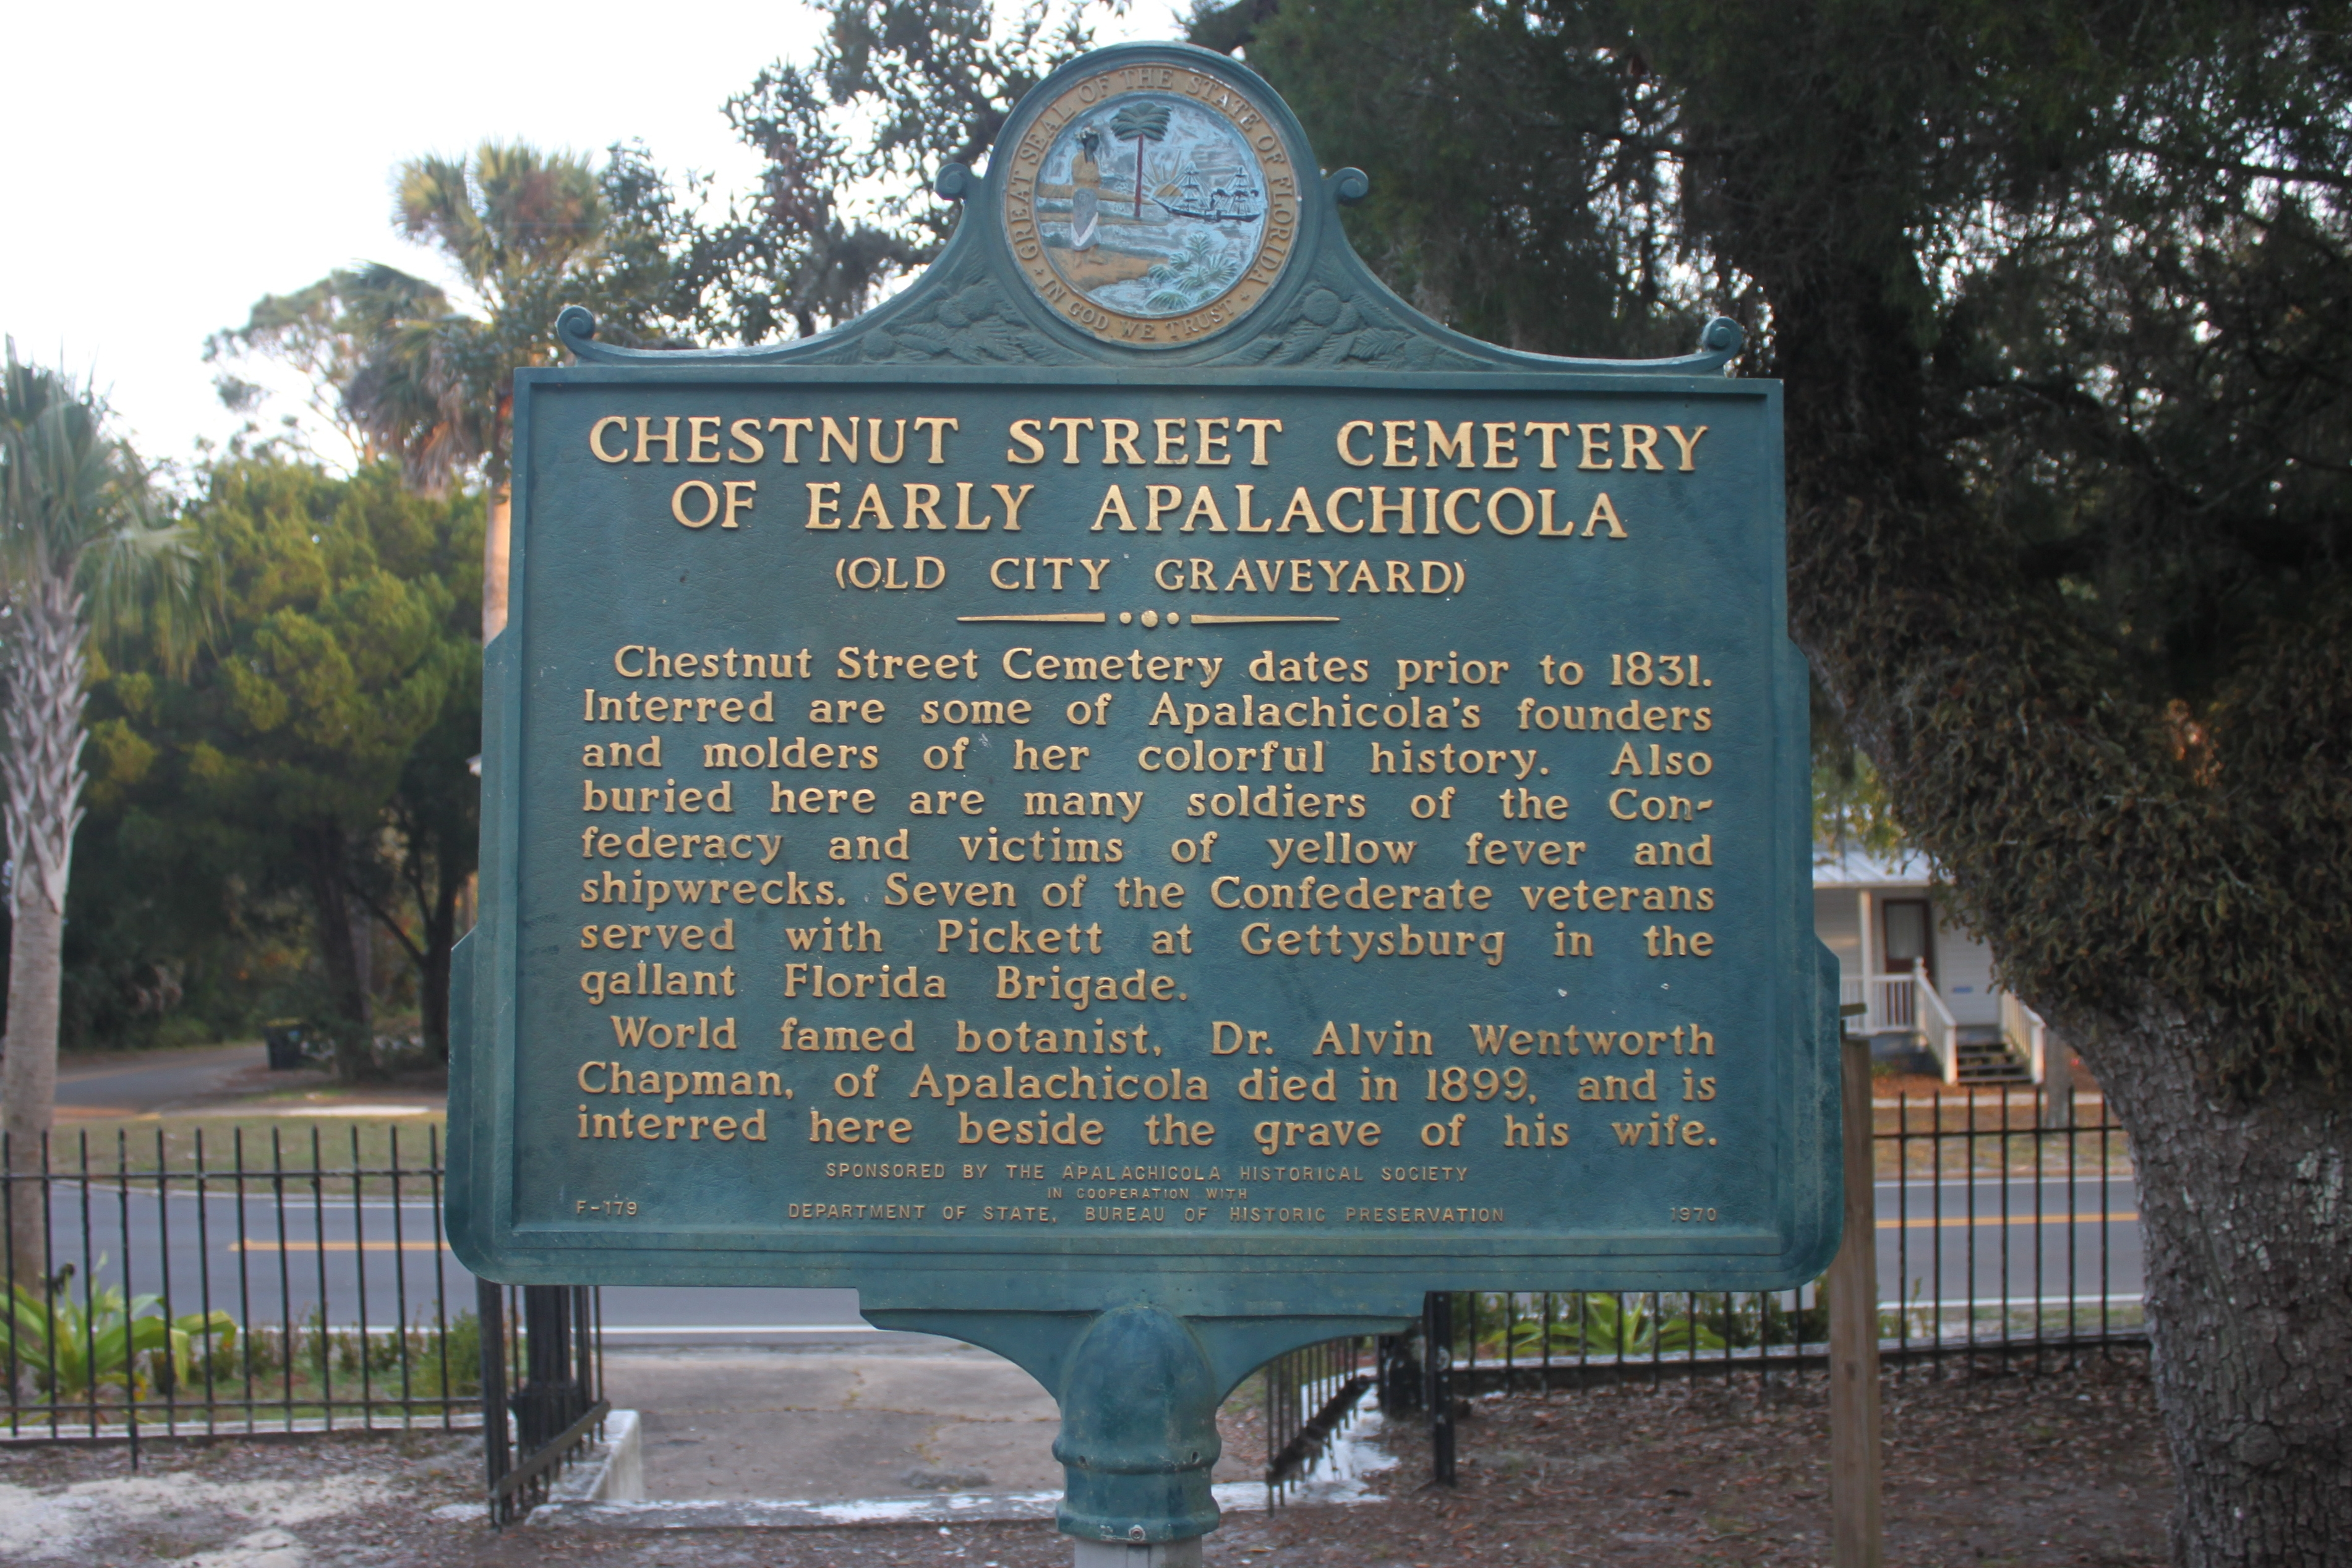 Chestnut Street Cemetery of Early Apalachicola Marker